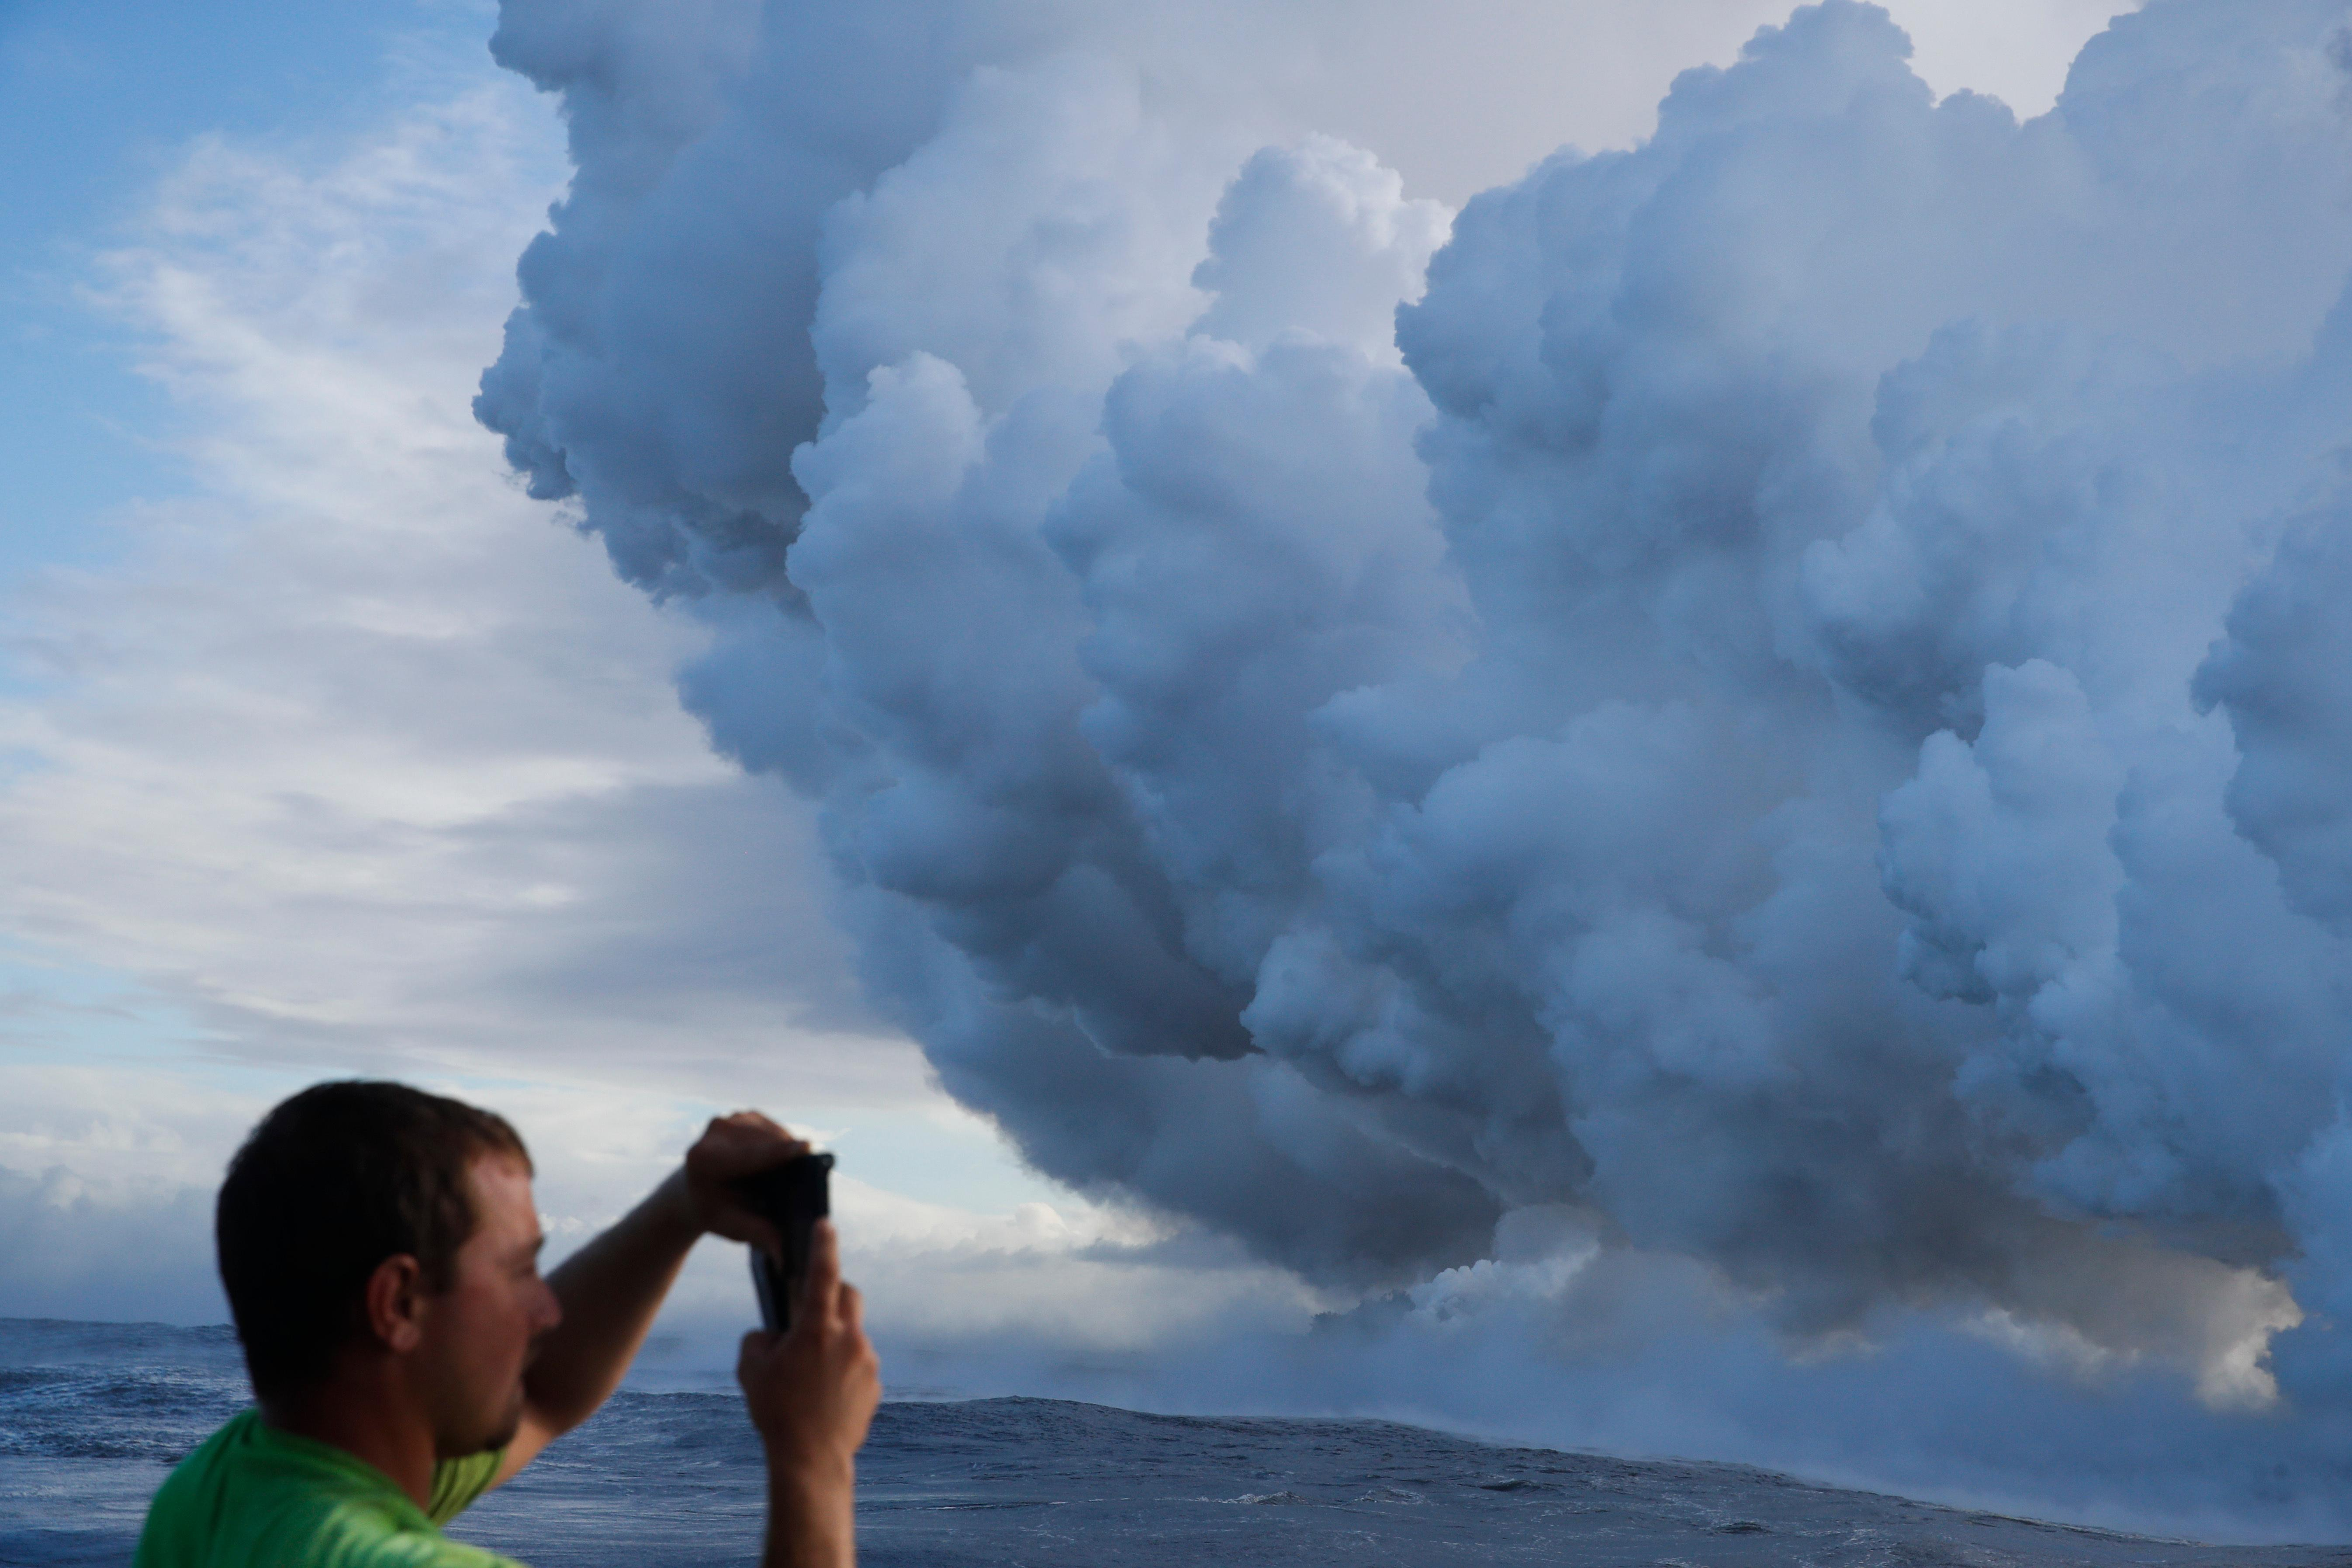 Joe Kekedi takes pictures of a plume of steam as lava enters the ocean near Pahoa, Hawaii, Sunday, May 20, 2018. Kilauea volcano that is oozing, spewing and exploding on Hawaii's Big Island has gotten more hazardous in recent days, with rivers of molten rock pouring into the ocean Sunday and flying lava causing the first major injury. (AP Photo/Jae C. Hong)